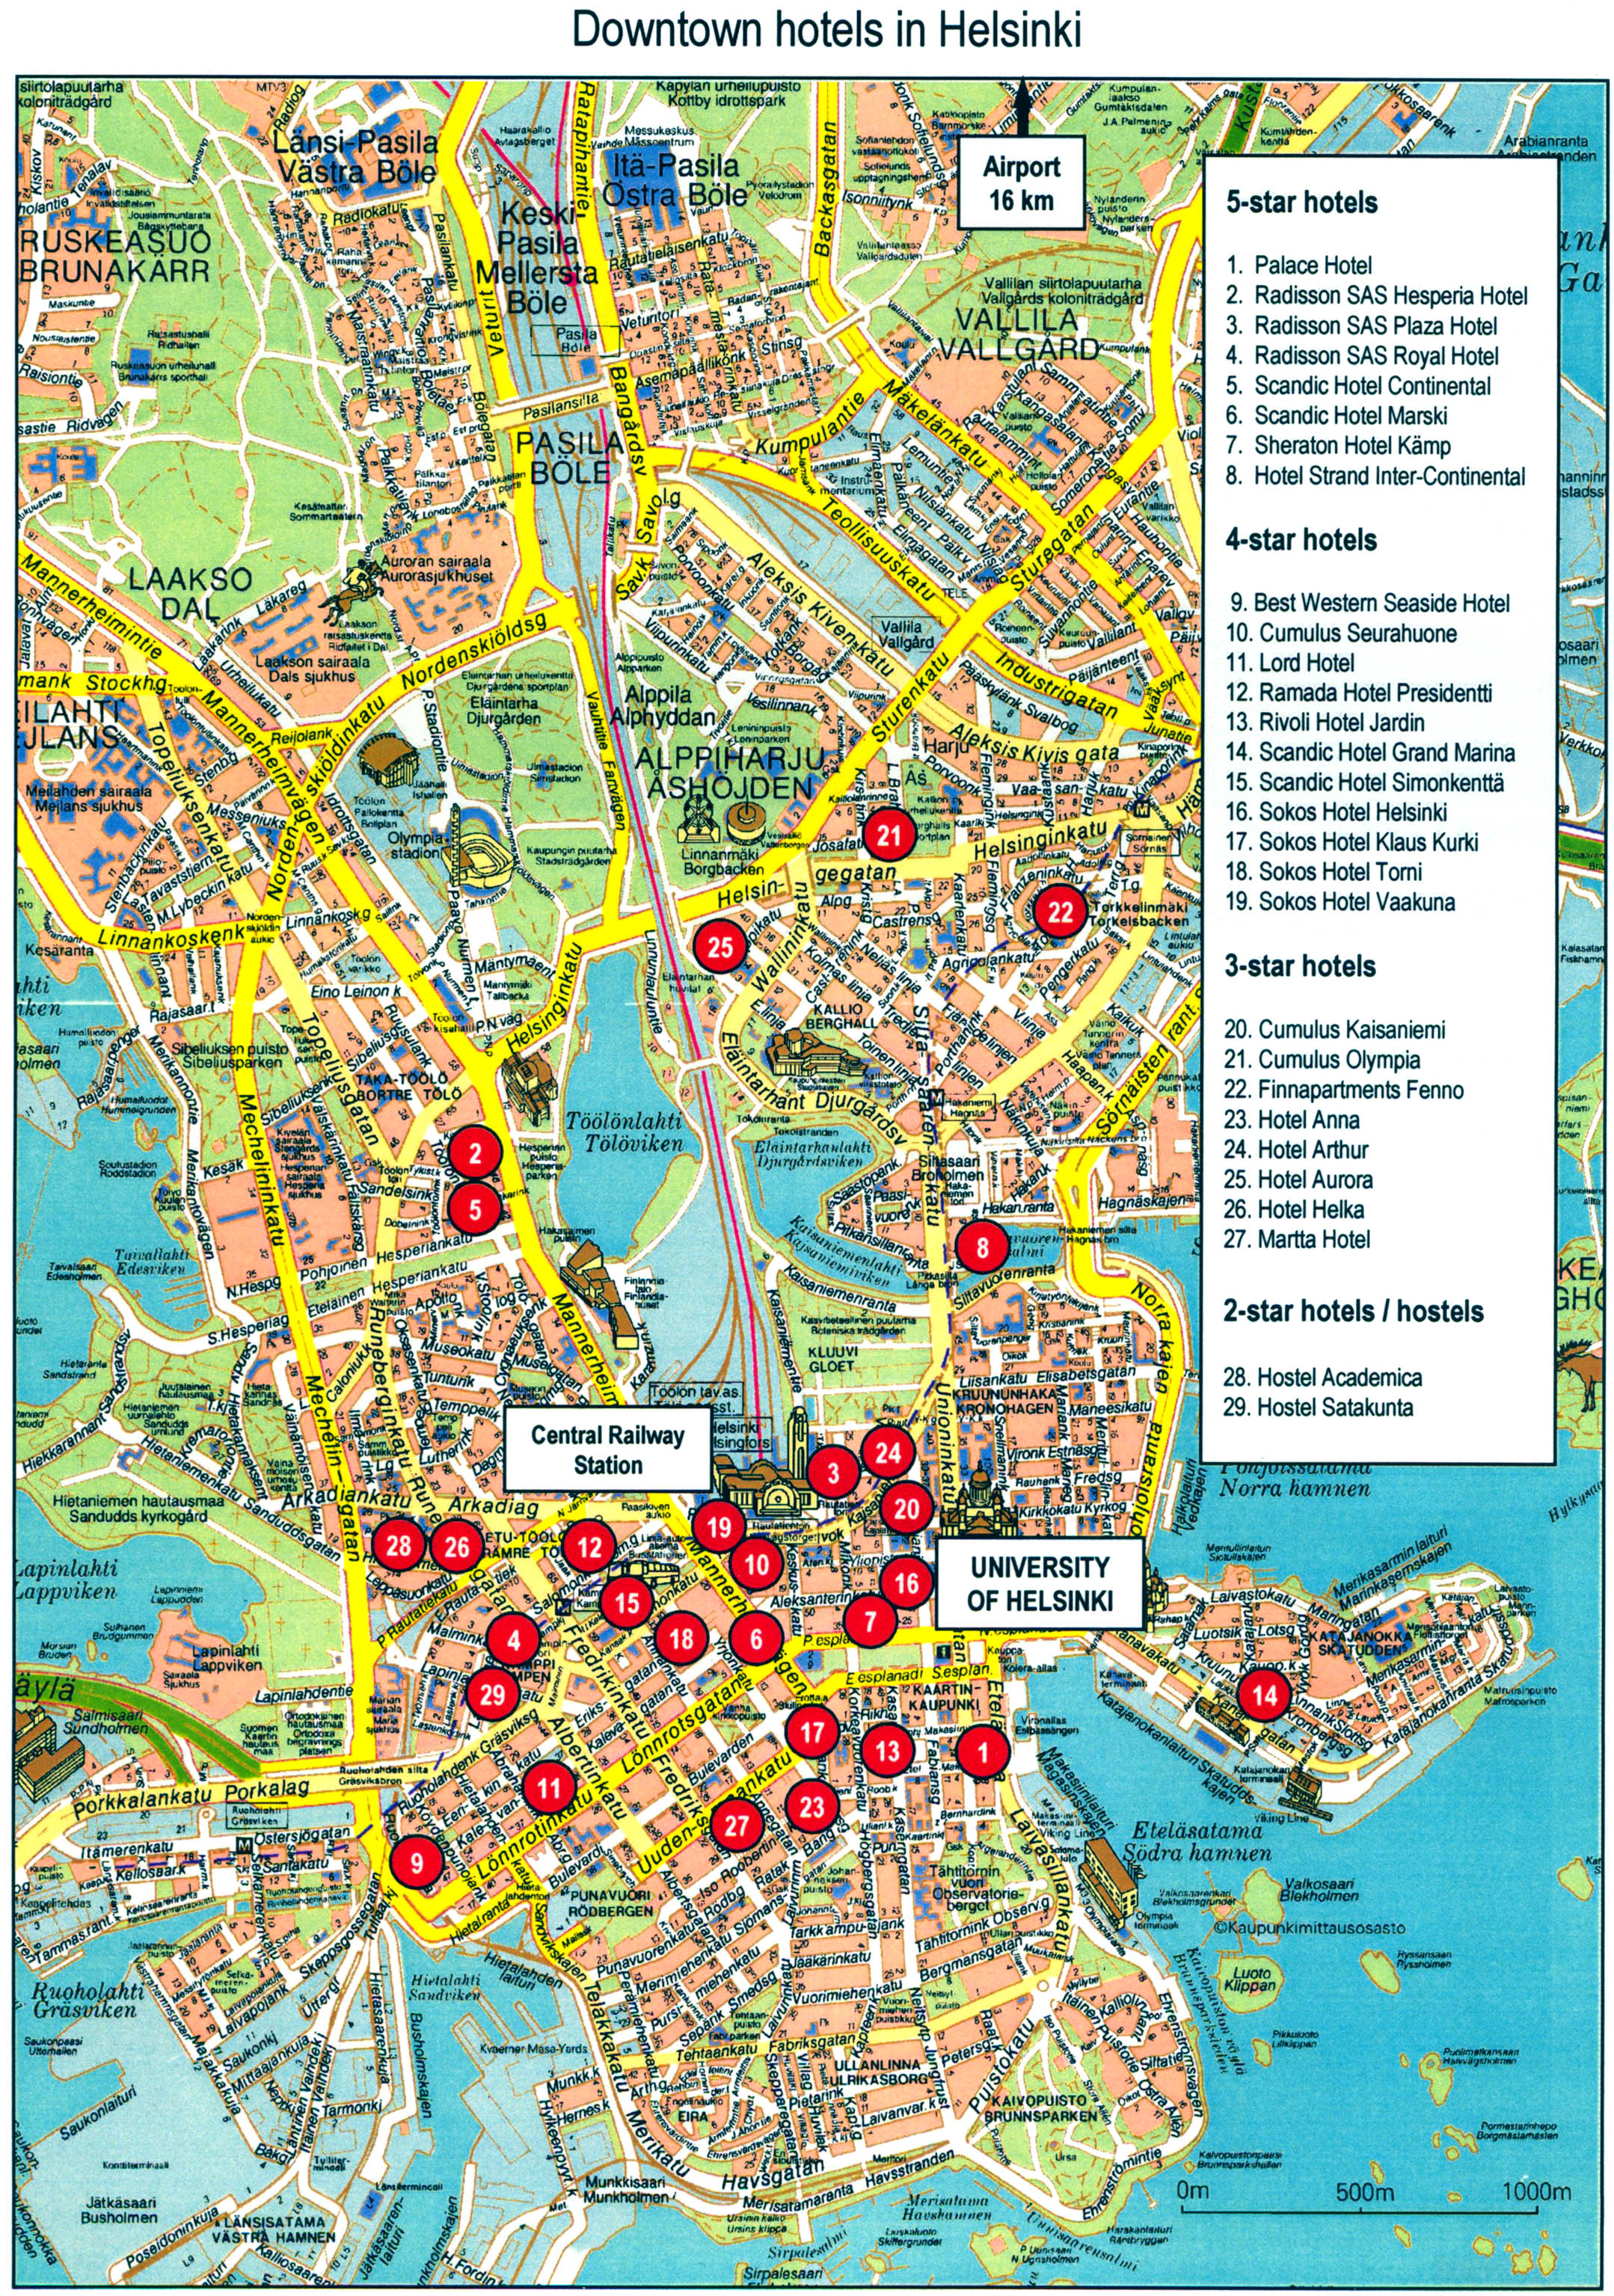 Helsinki Finland Tourist Map - Helsinki FInland • mappery on seattle tour map, seattle landmarks map, seattle driving map, seattle biking map, seattle center map, downtown seattle shopping map, seattle events map, seattle visitors map, seattle bars map, seattle beaches map, seattle tourist, seattle city map printable, seattle day trips, things to do in seattle map, seattle architecture map, seattle city map with attractions, seattle water taxi map, seattle nightlife map, seattle climate map, seattle cruise map,